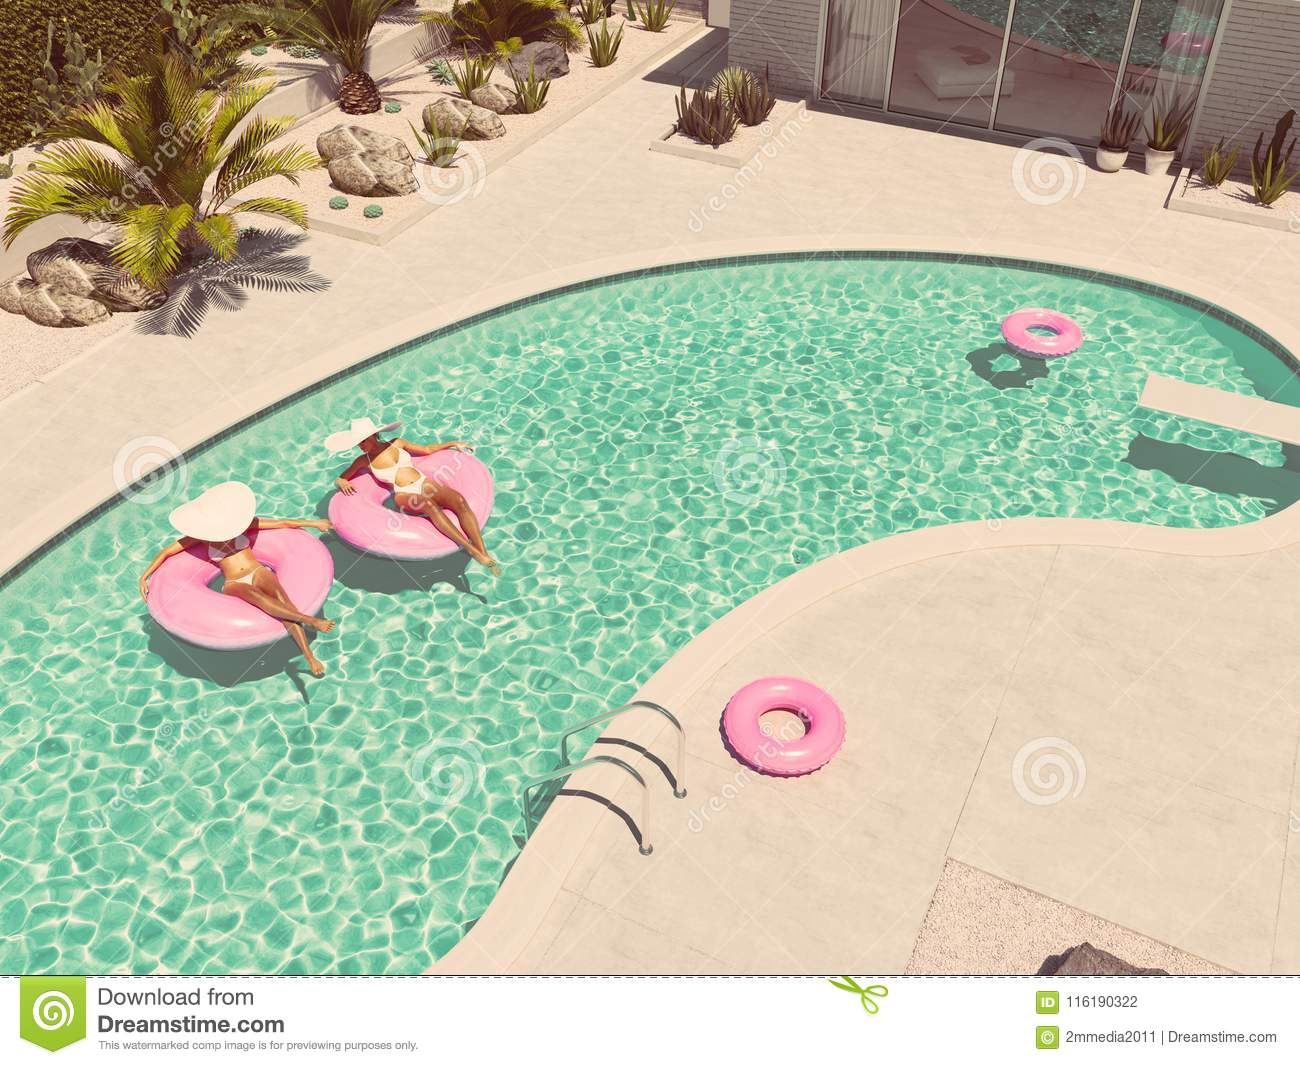 Women swimming on float in a pool. 3d rendering